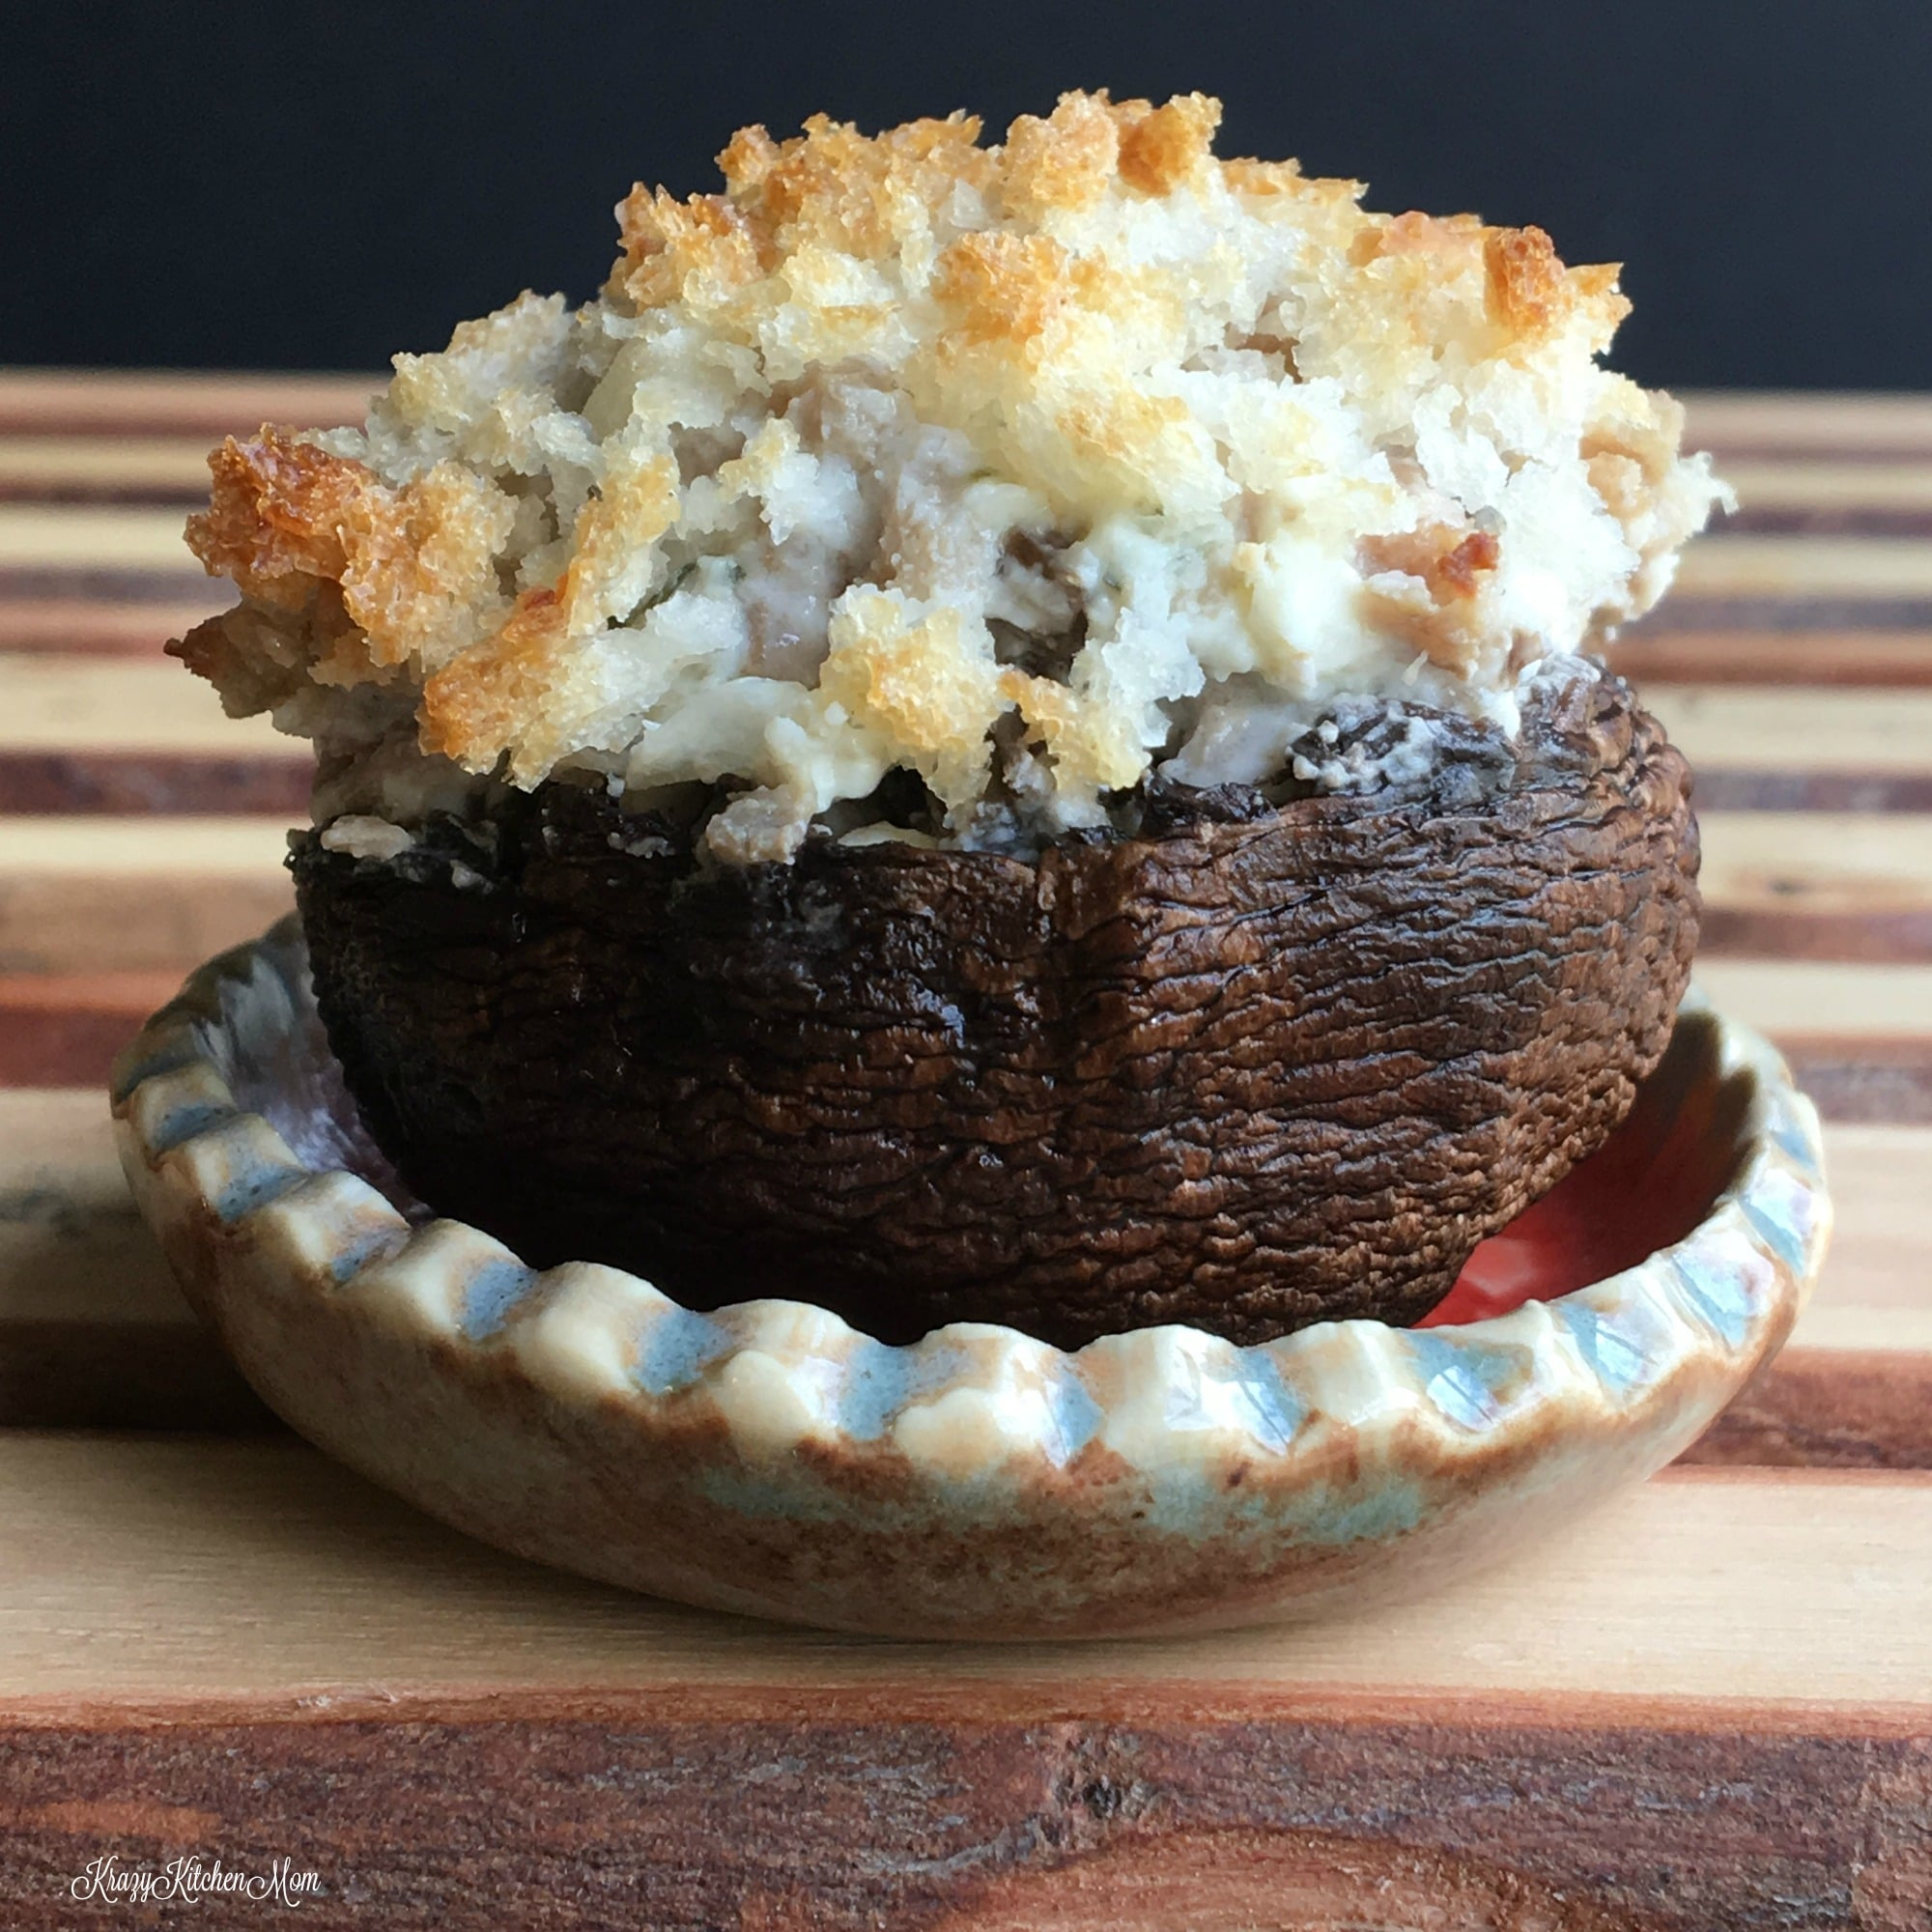 Recipe for stuffed mushrooms